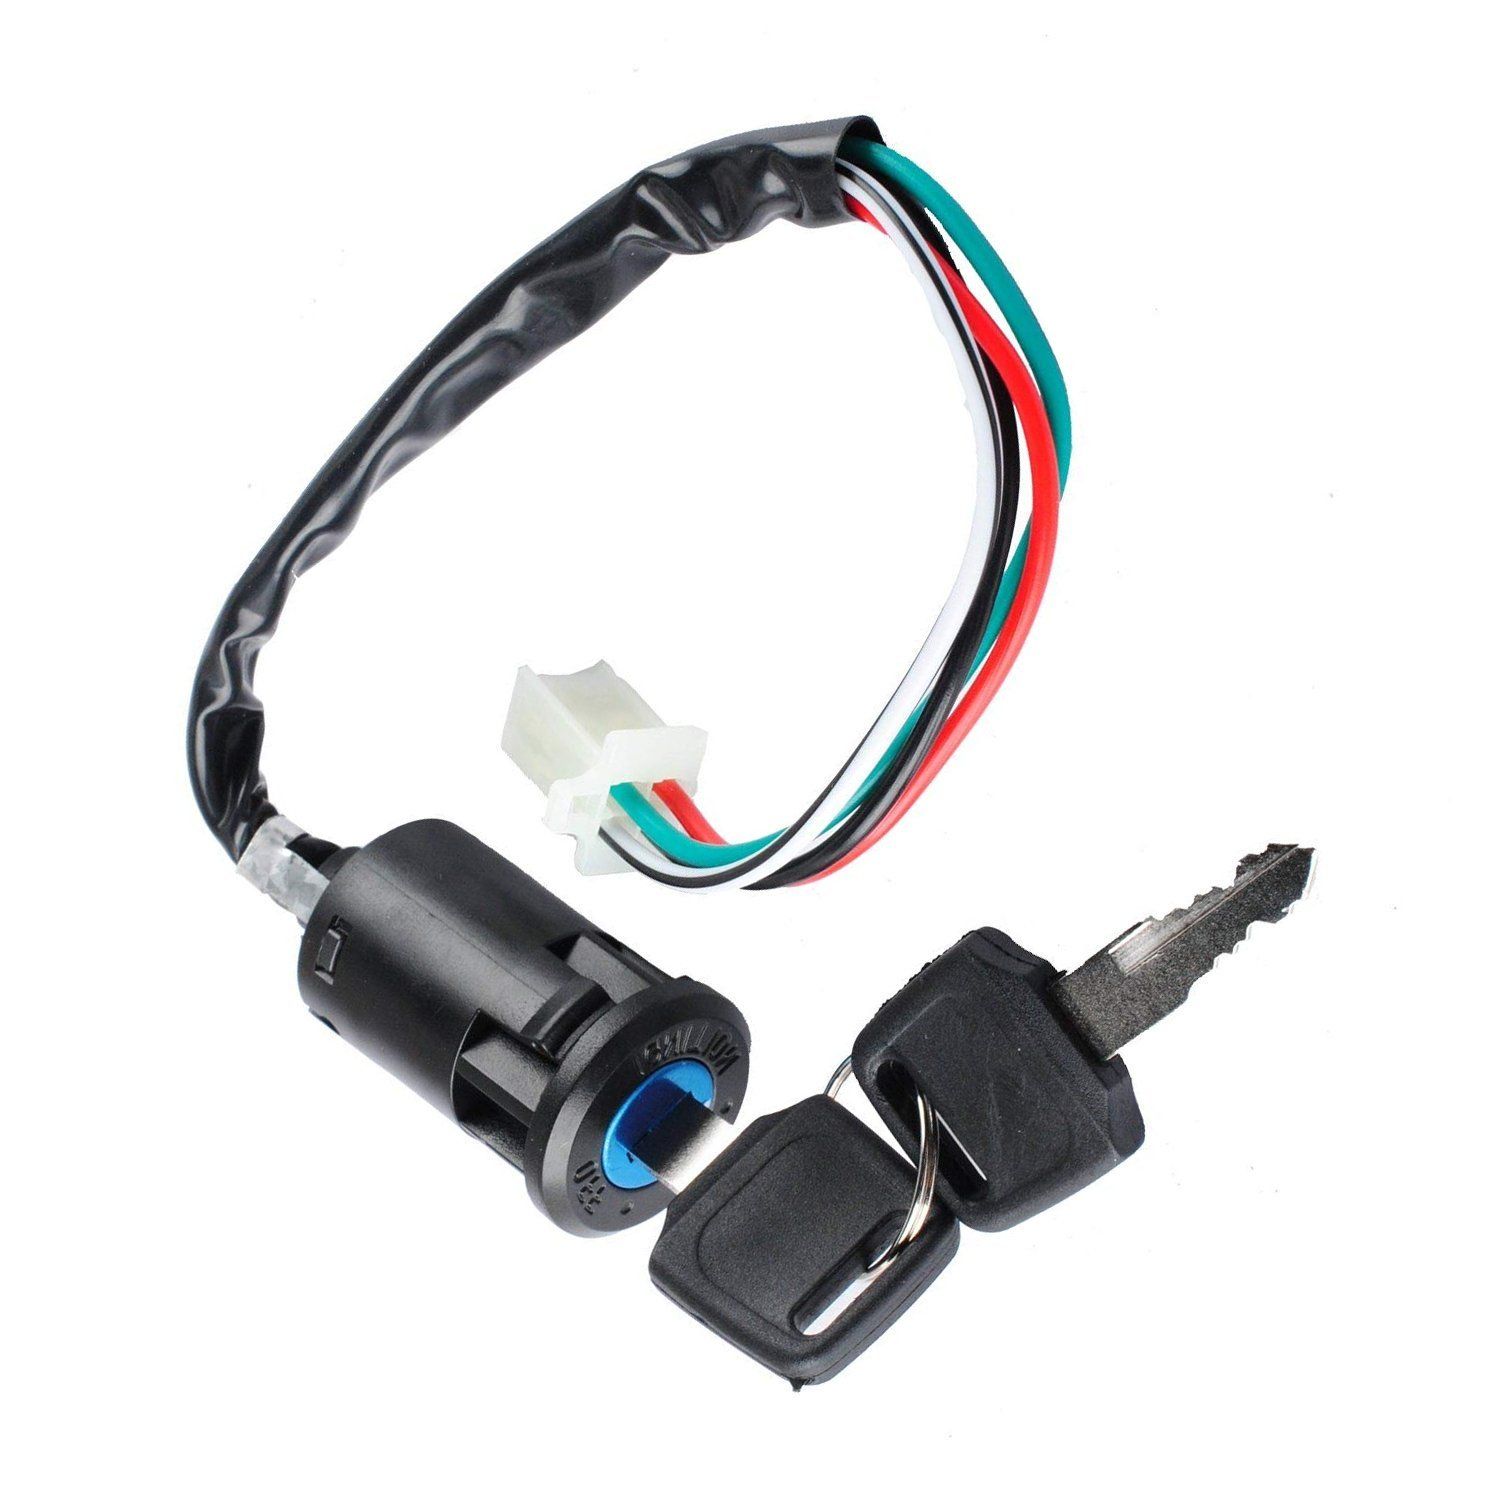 Ignition Key Switch 50cc 70cc 90cc 110cc 150cc 200cc 250cc Chinese Pocket Rocket Wiring Diagram Atv Quad Starter Amazon Canada